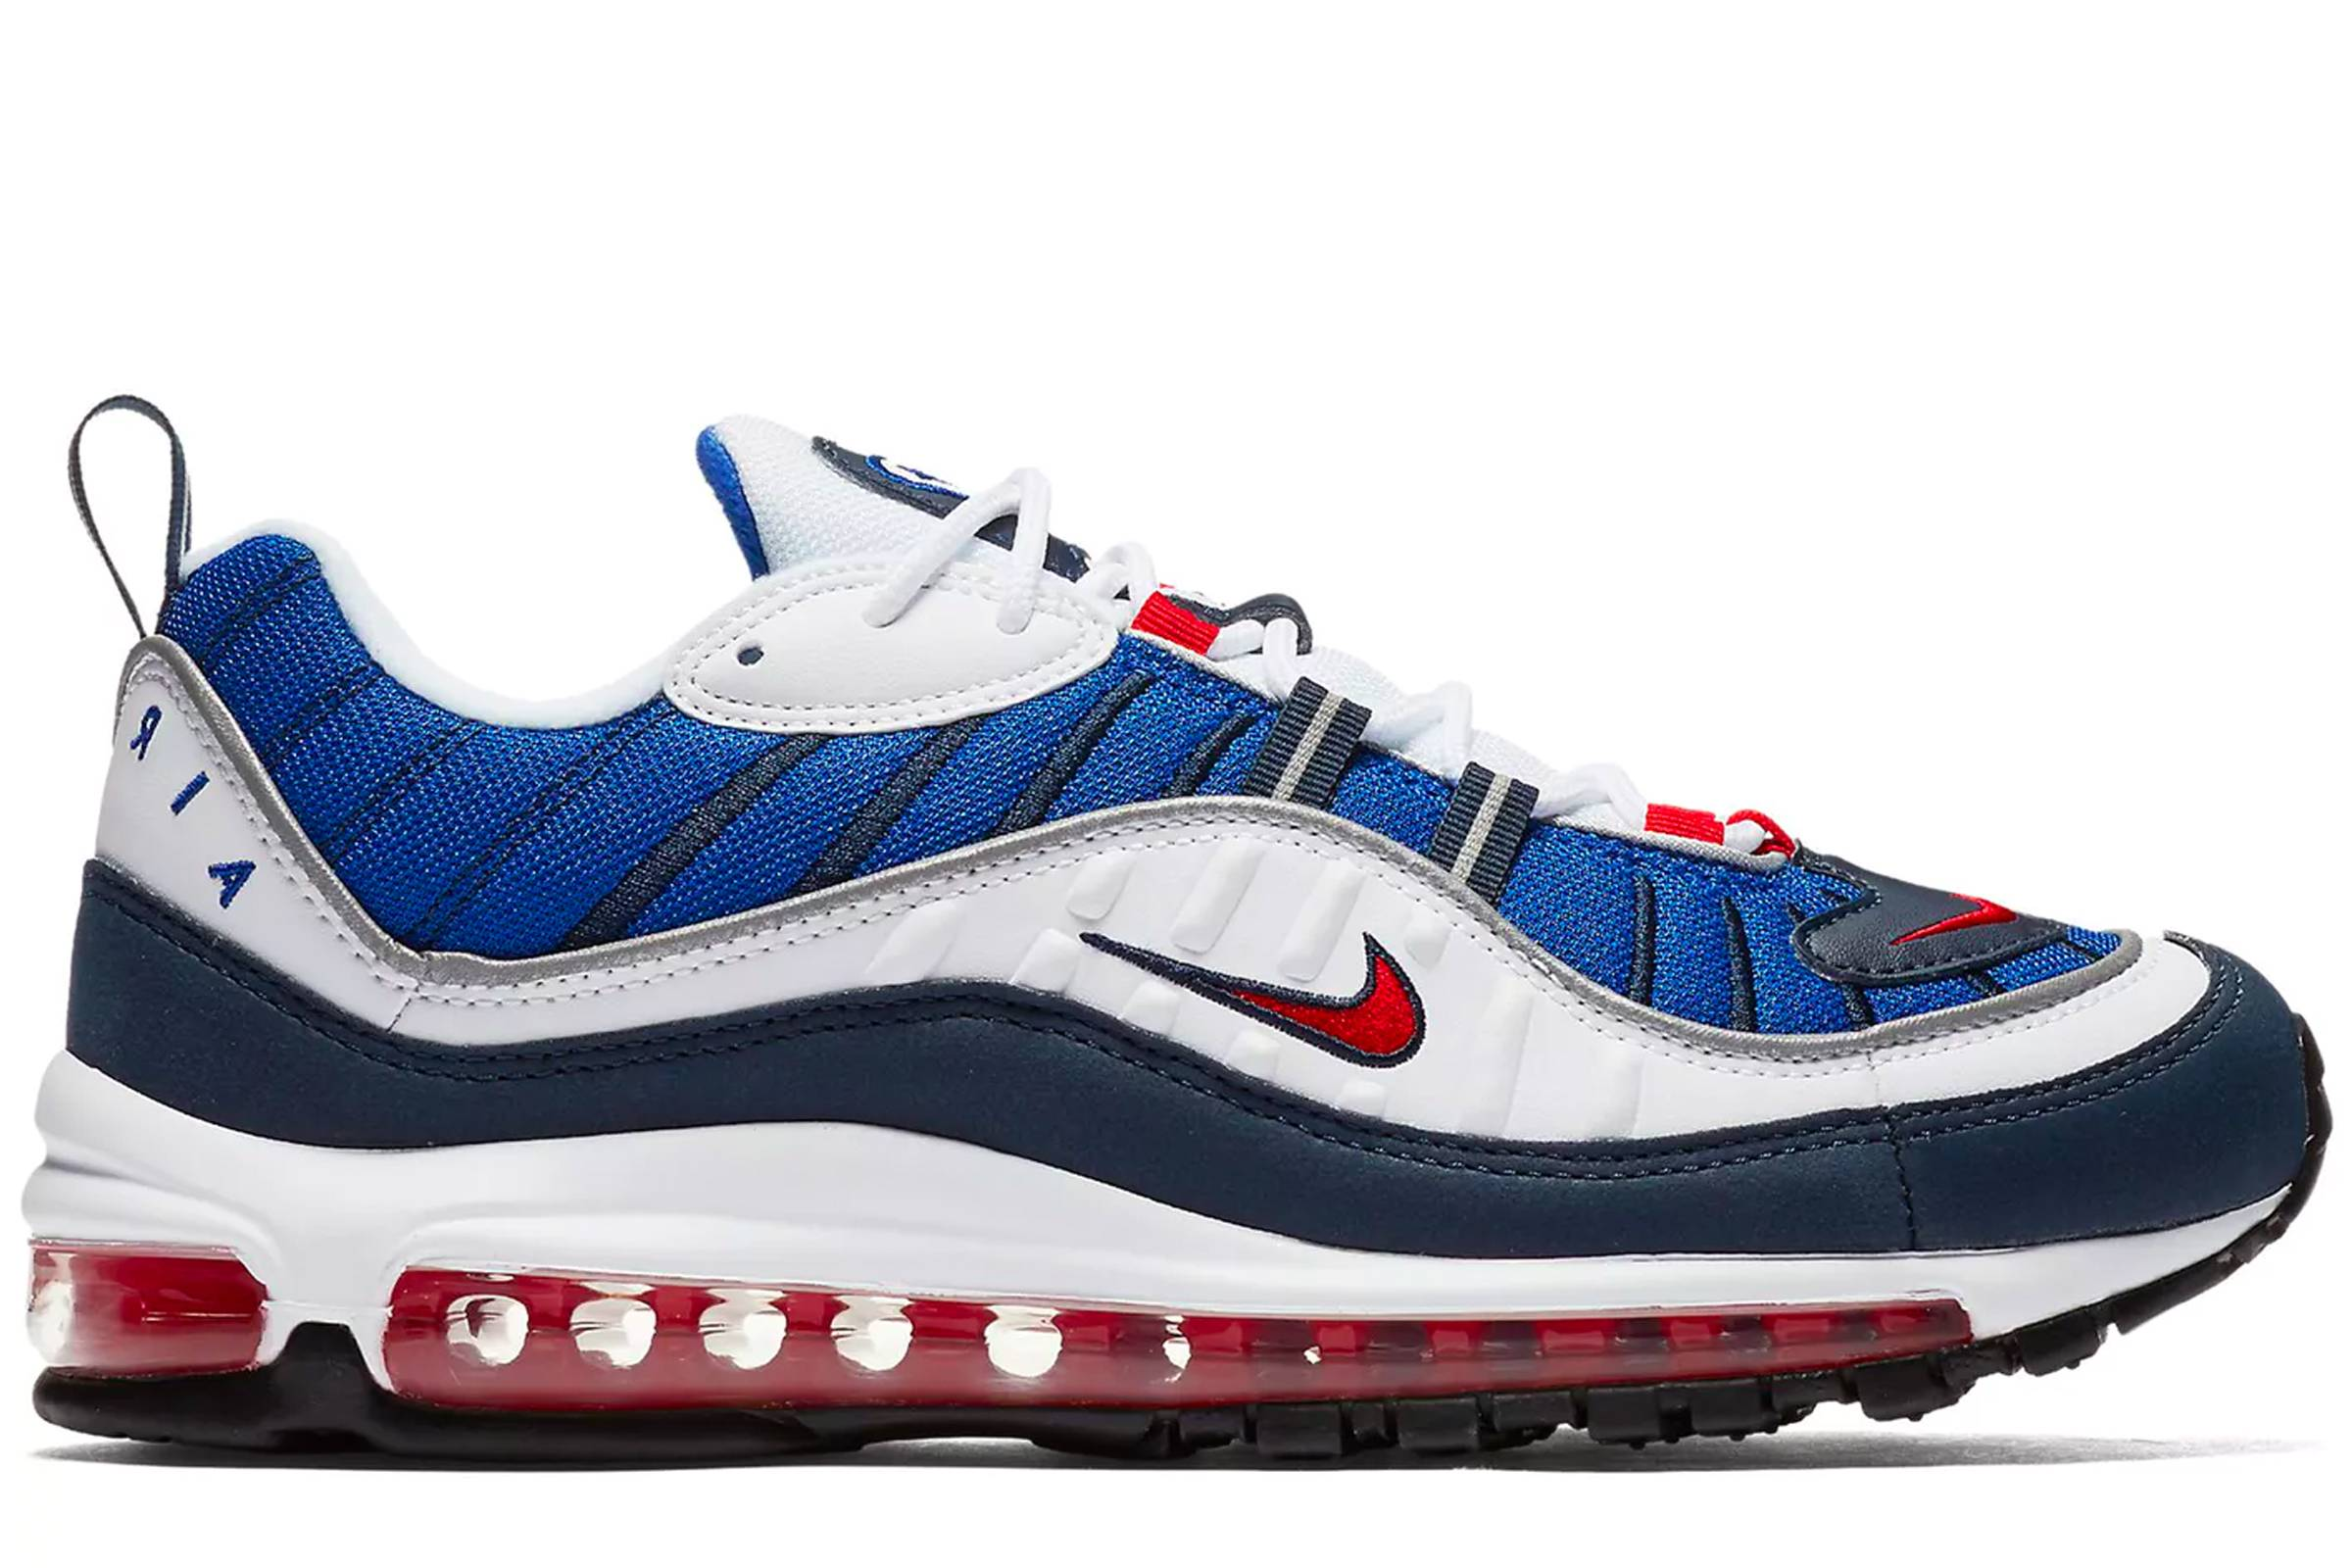 9b6a2d5320a5 Nike s Problem Child  A History of the Air Max 98 - Air Max 98 ...